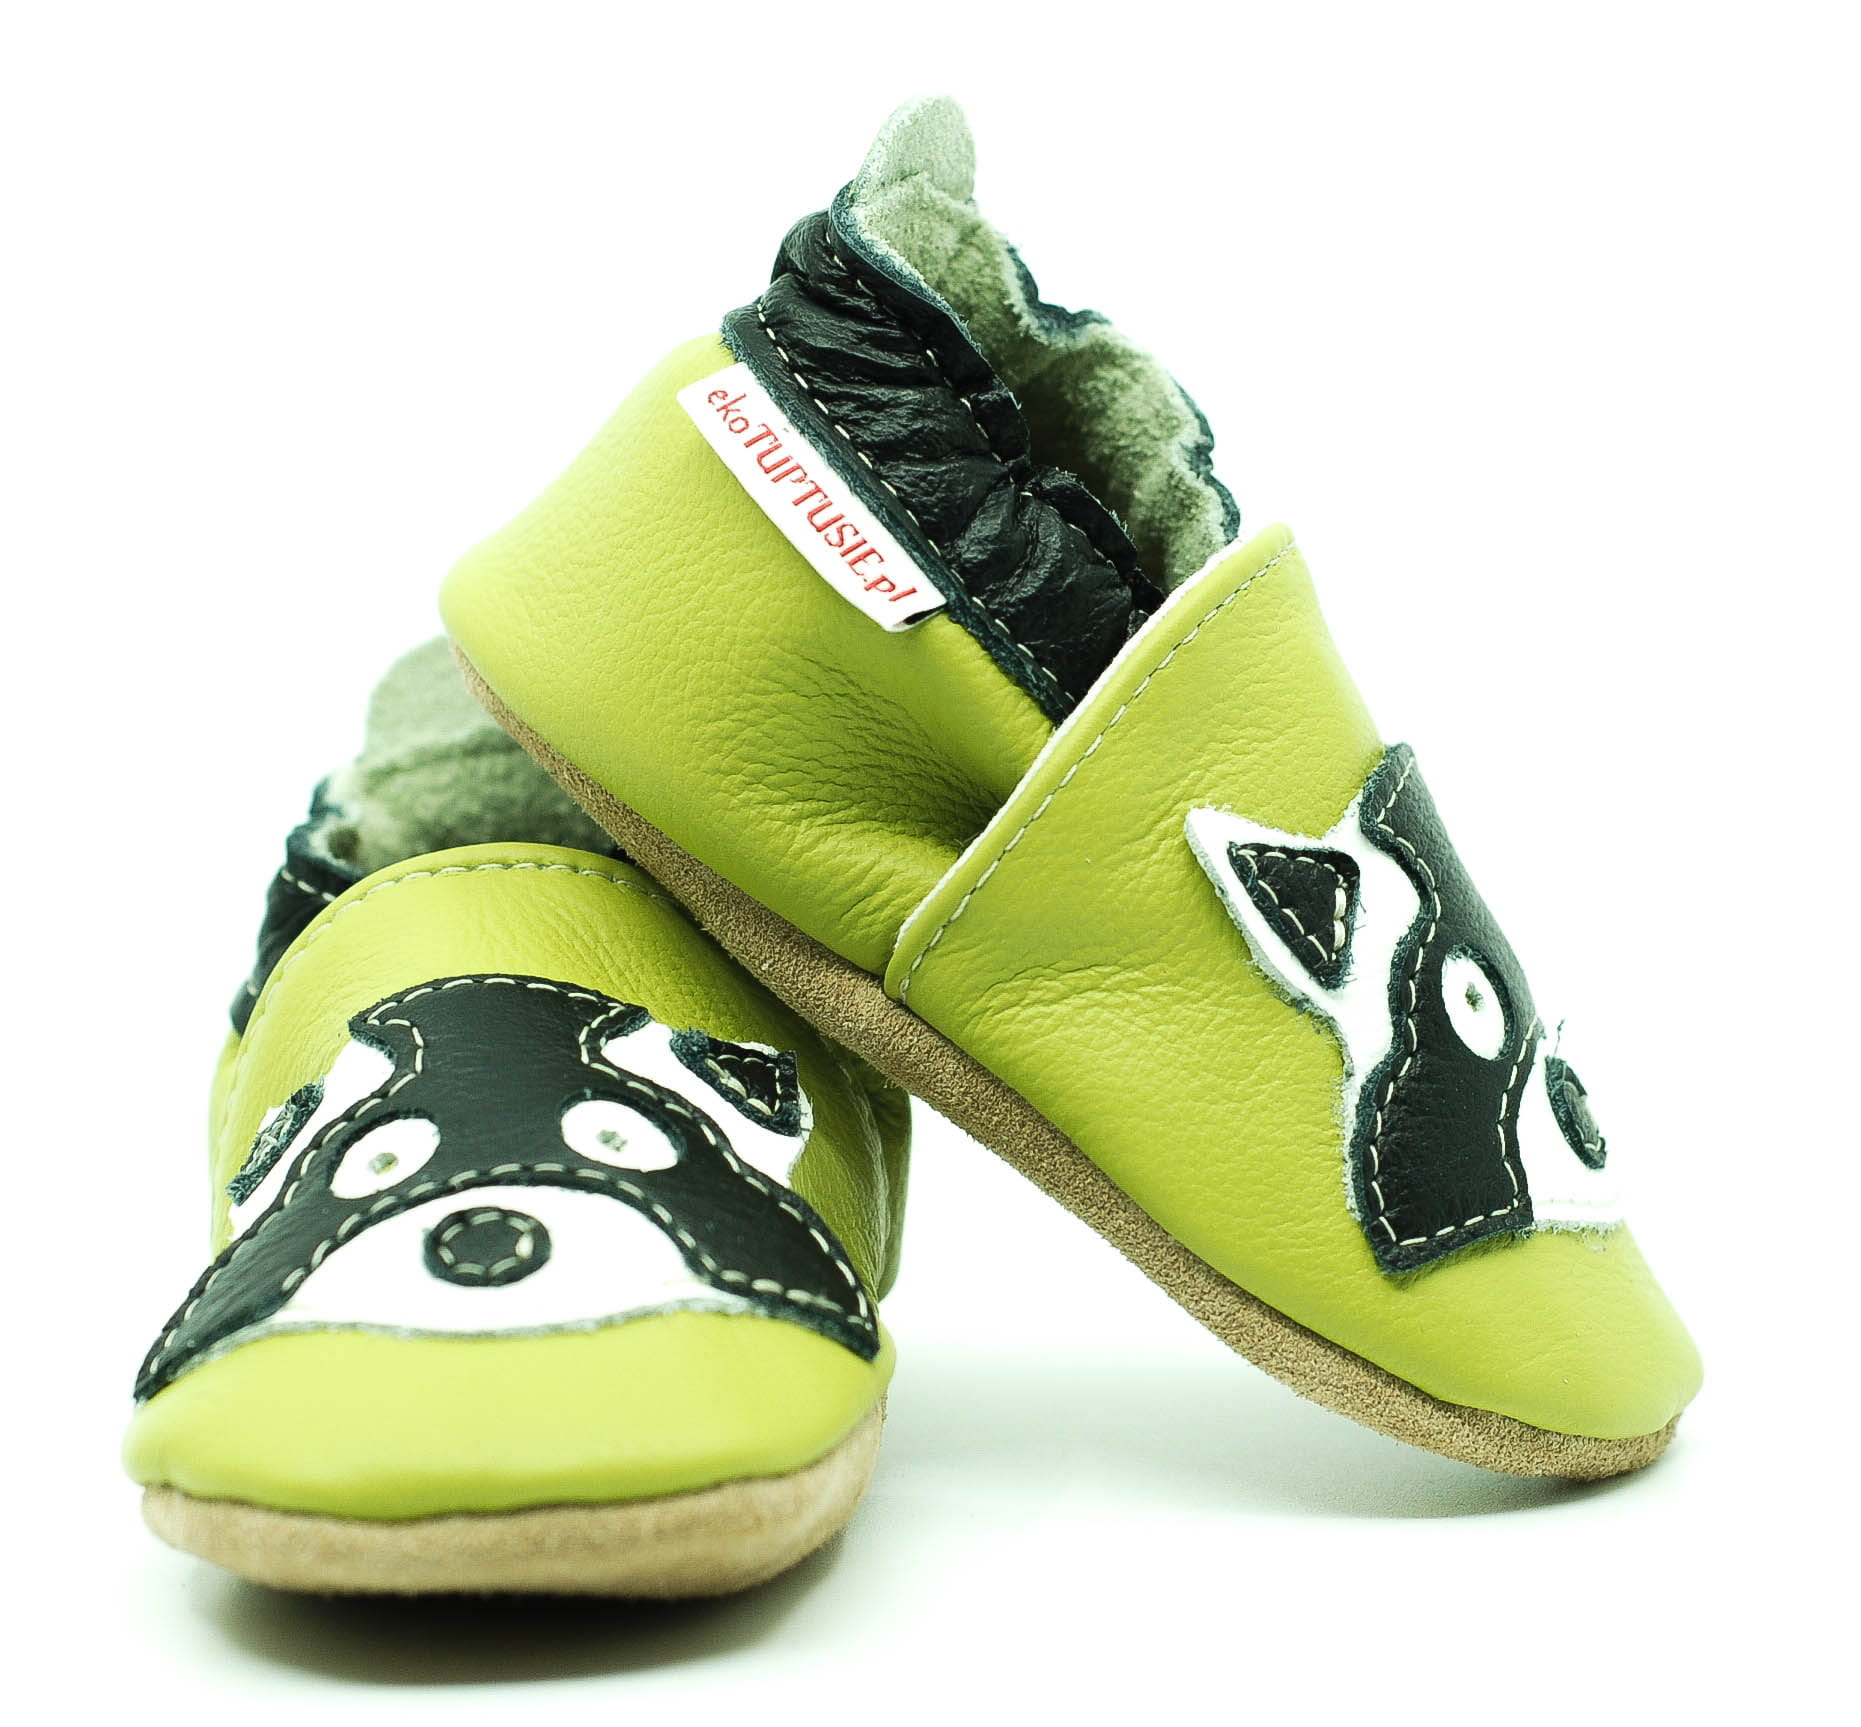 fbcdc431332e1 Soft Sole Baby Shoes RACCOON ON GREEN